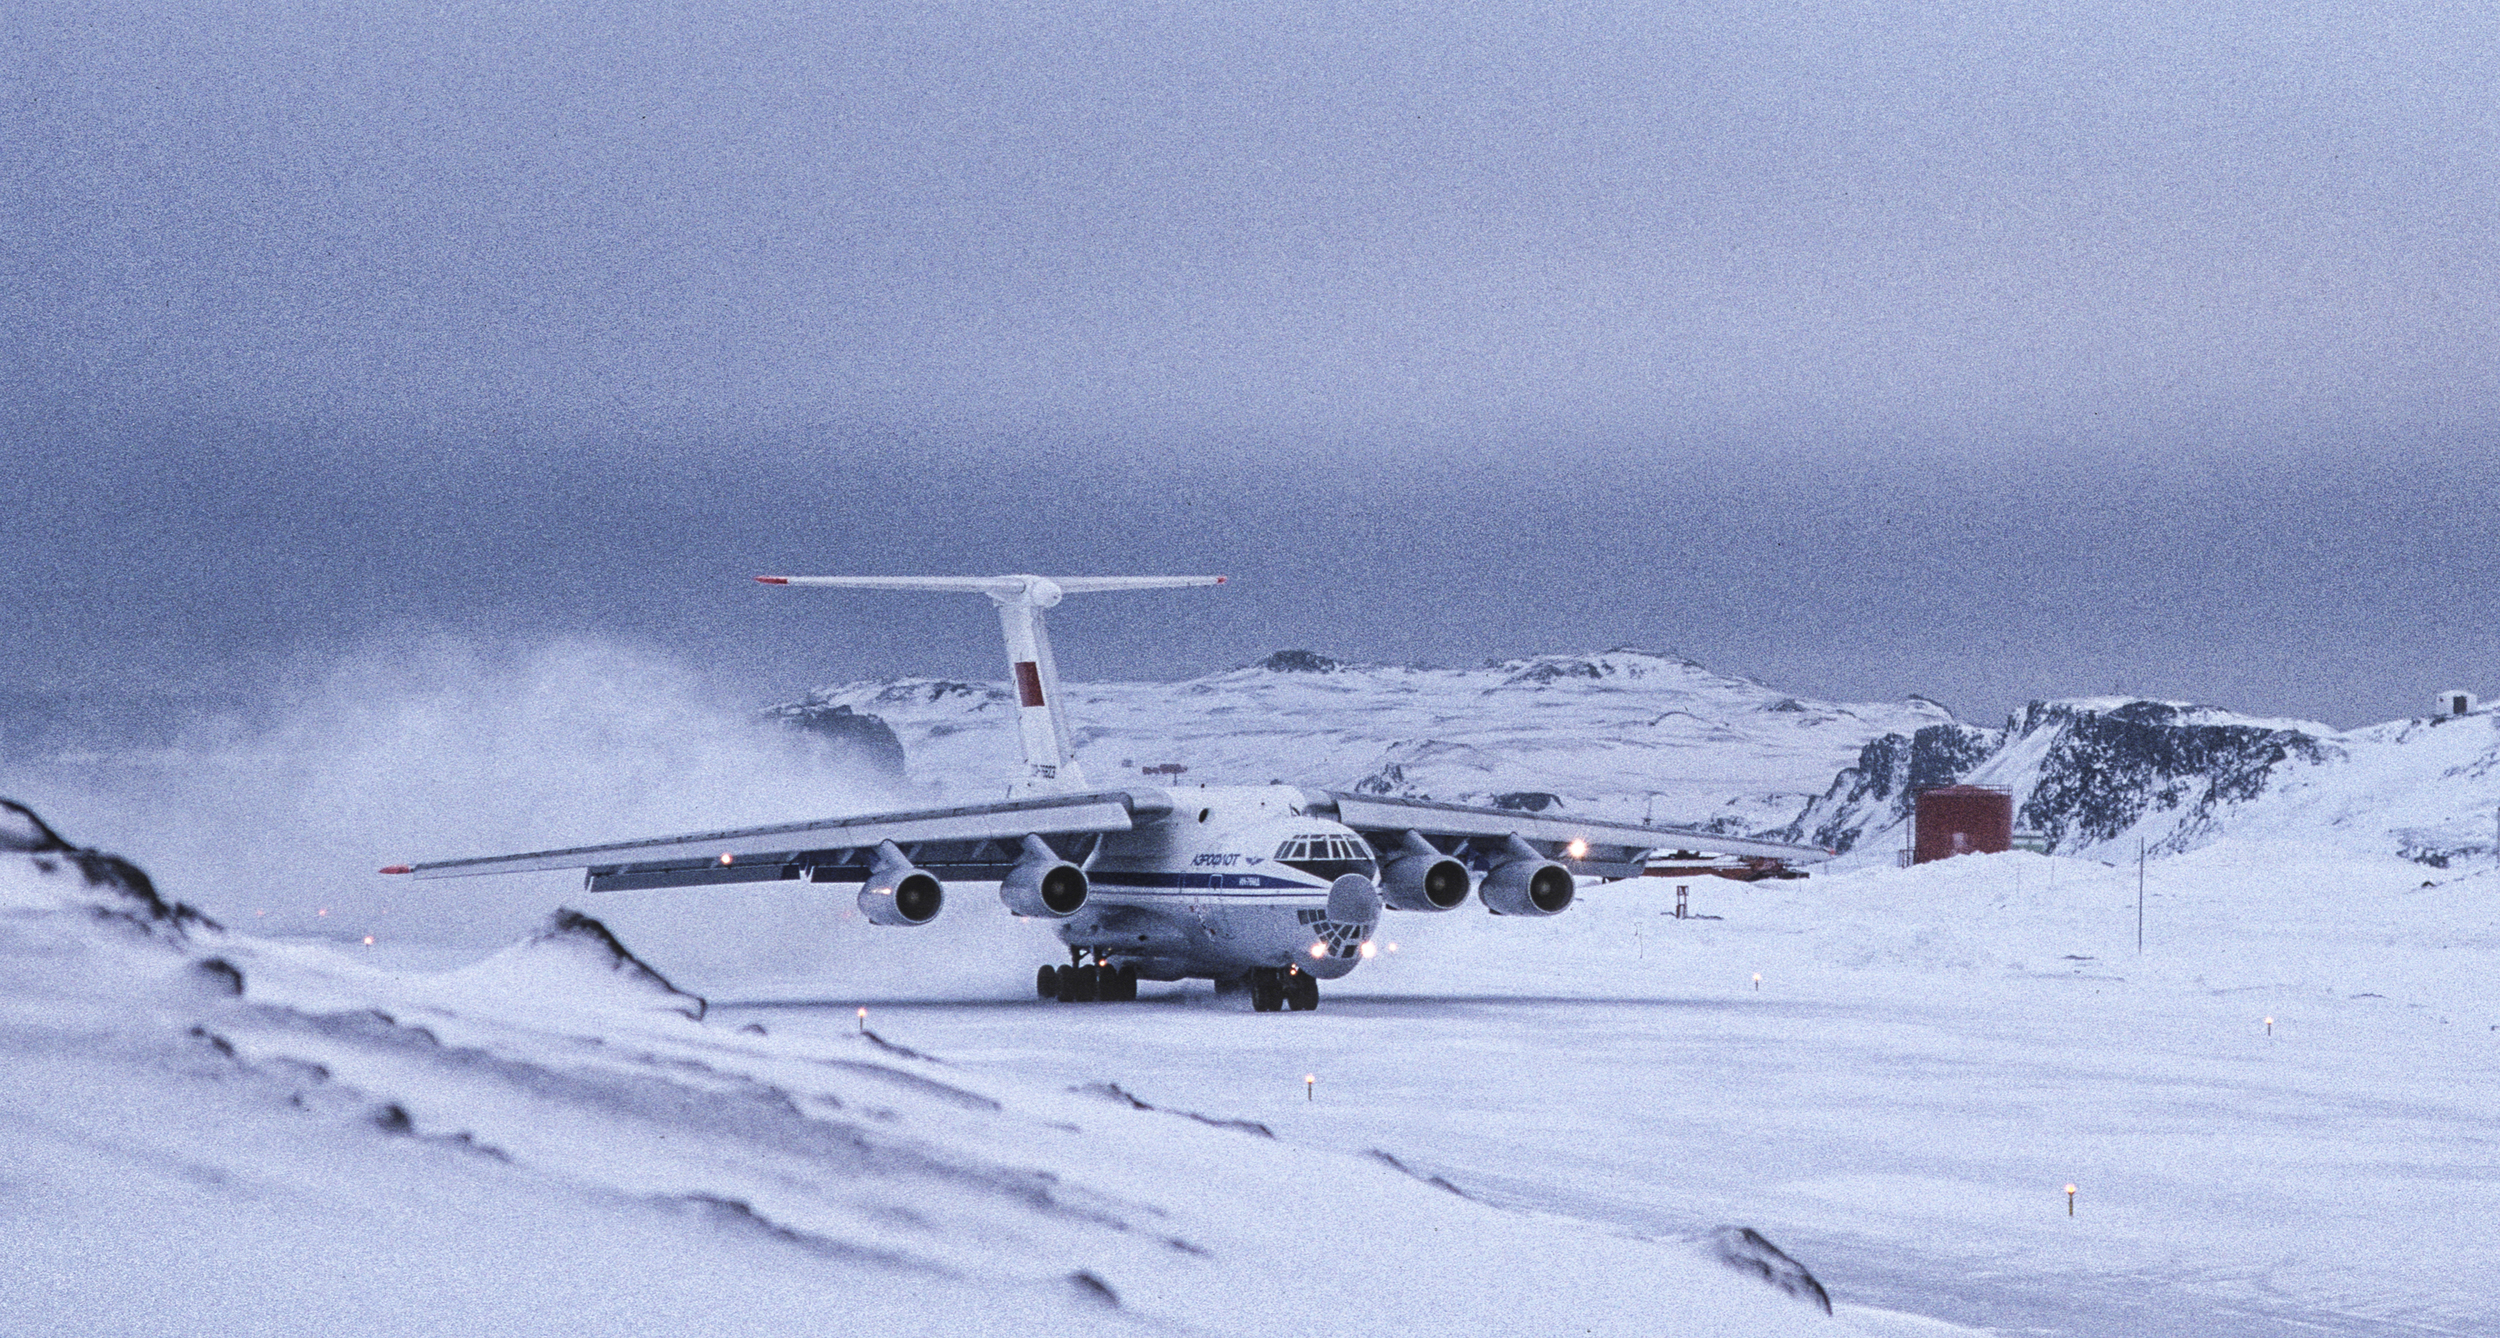 The Soviet Illyushin 76 takes off from King George Island, July 1989.  ©Trans-Antarctica photo by Per Breiehagen